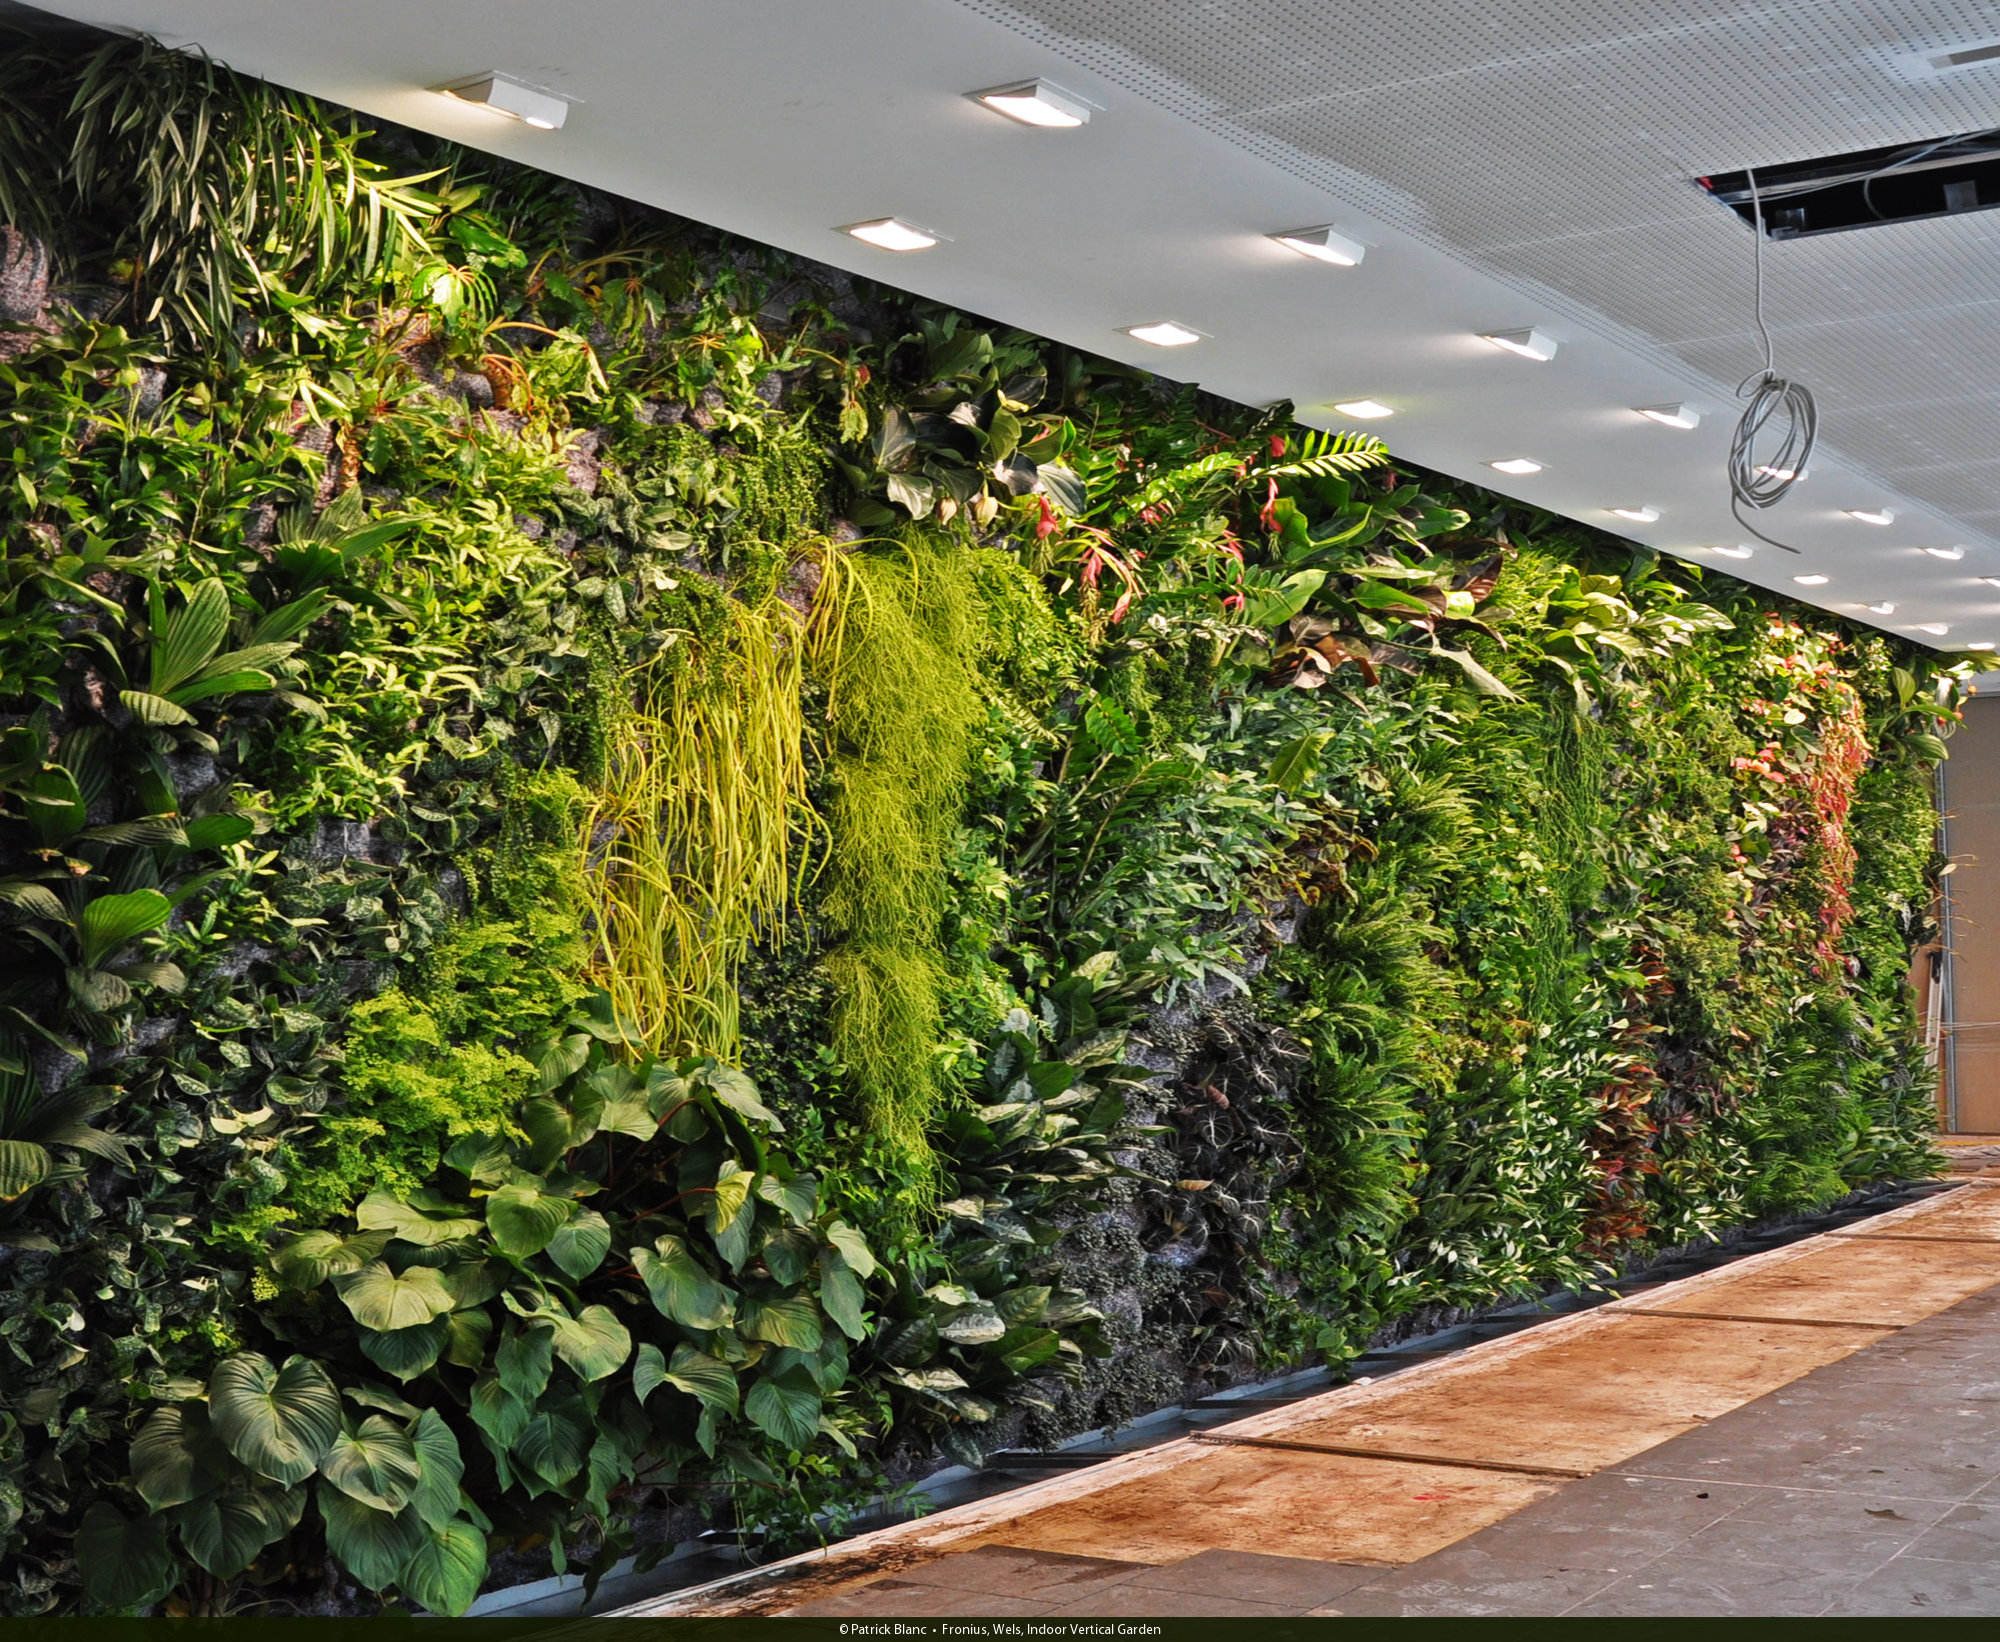 or us logon technic for com email vertical m garden expandable on modules more network sdn pictures verticalgardenconcept information to planting by our blogspot bhd and system marketing